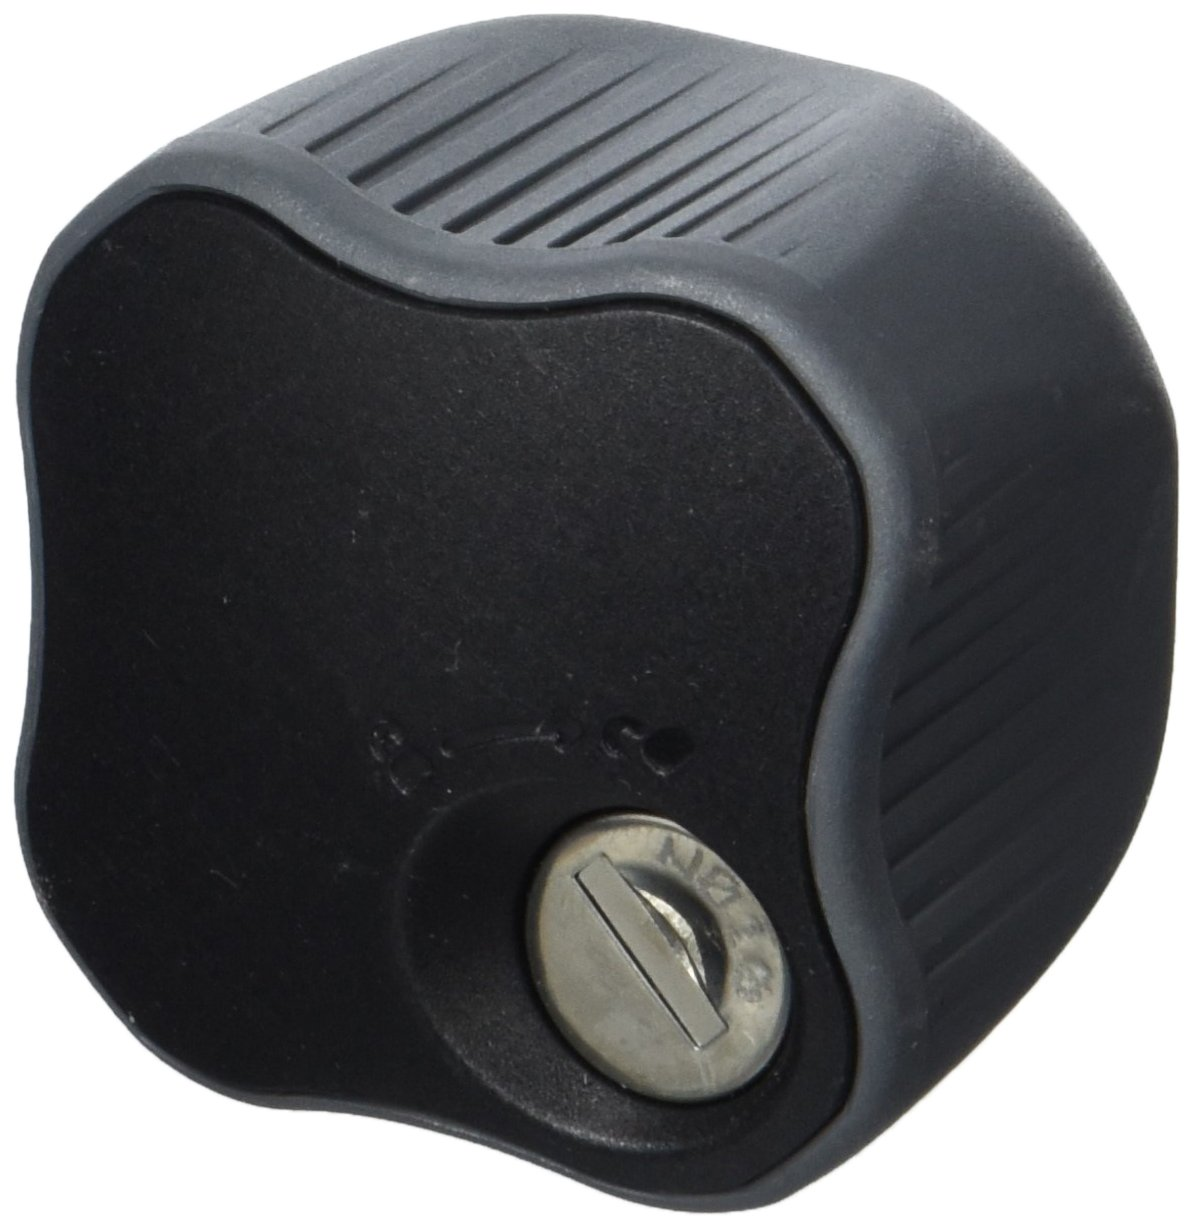 Unbekannt 527010 Lockable Knob, Black, One Size Thule GmbH.